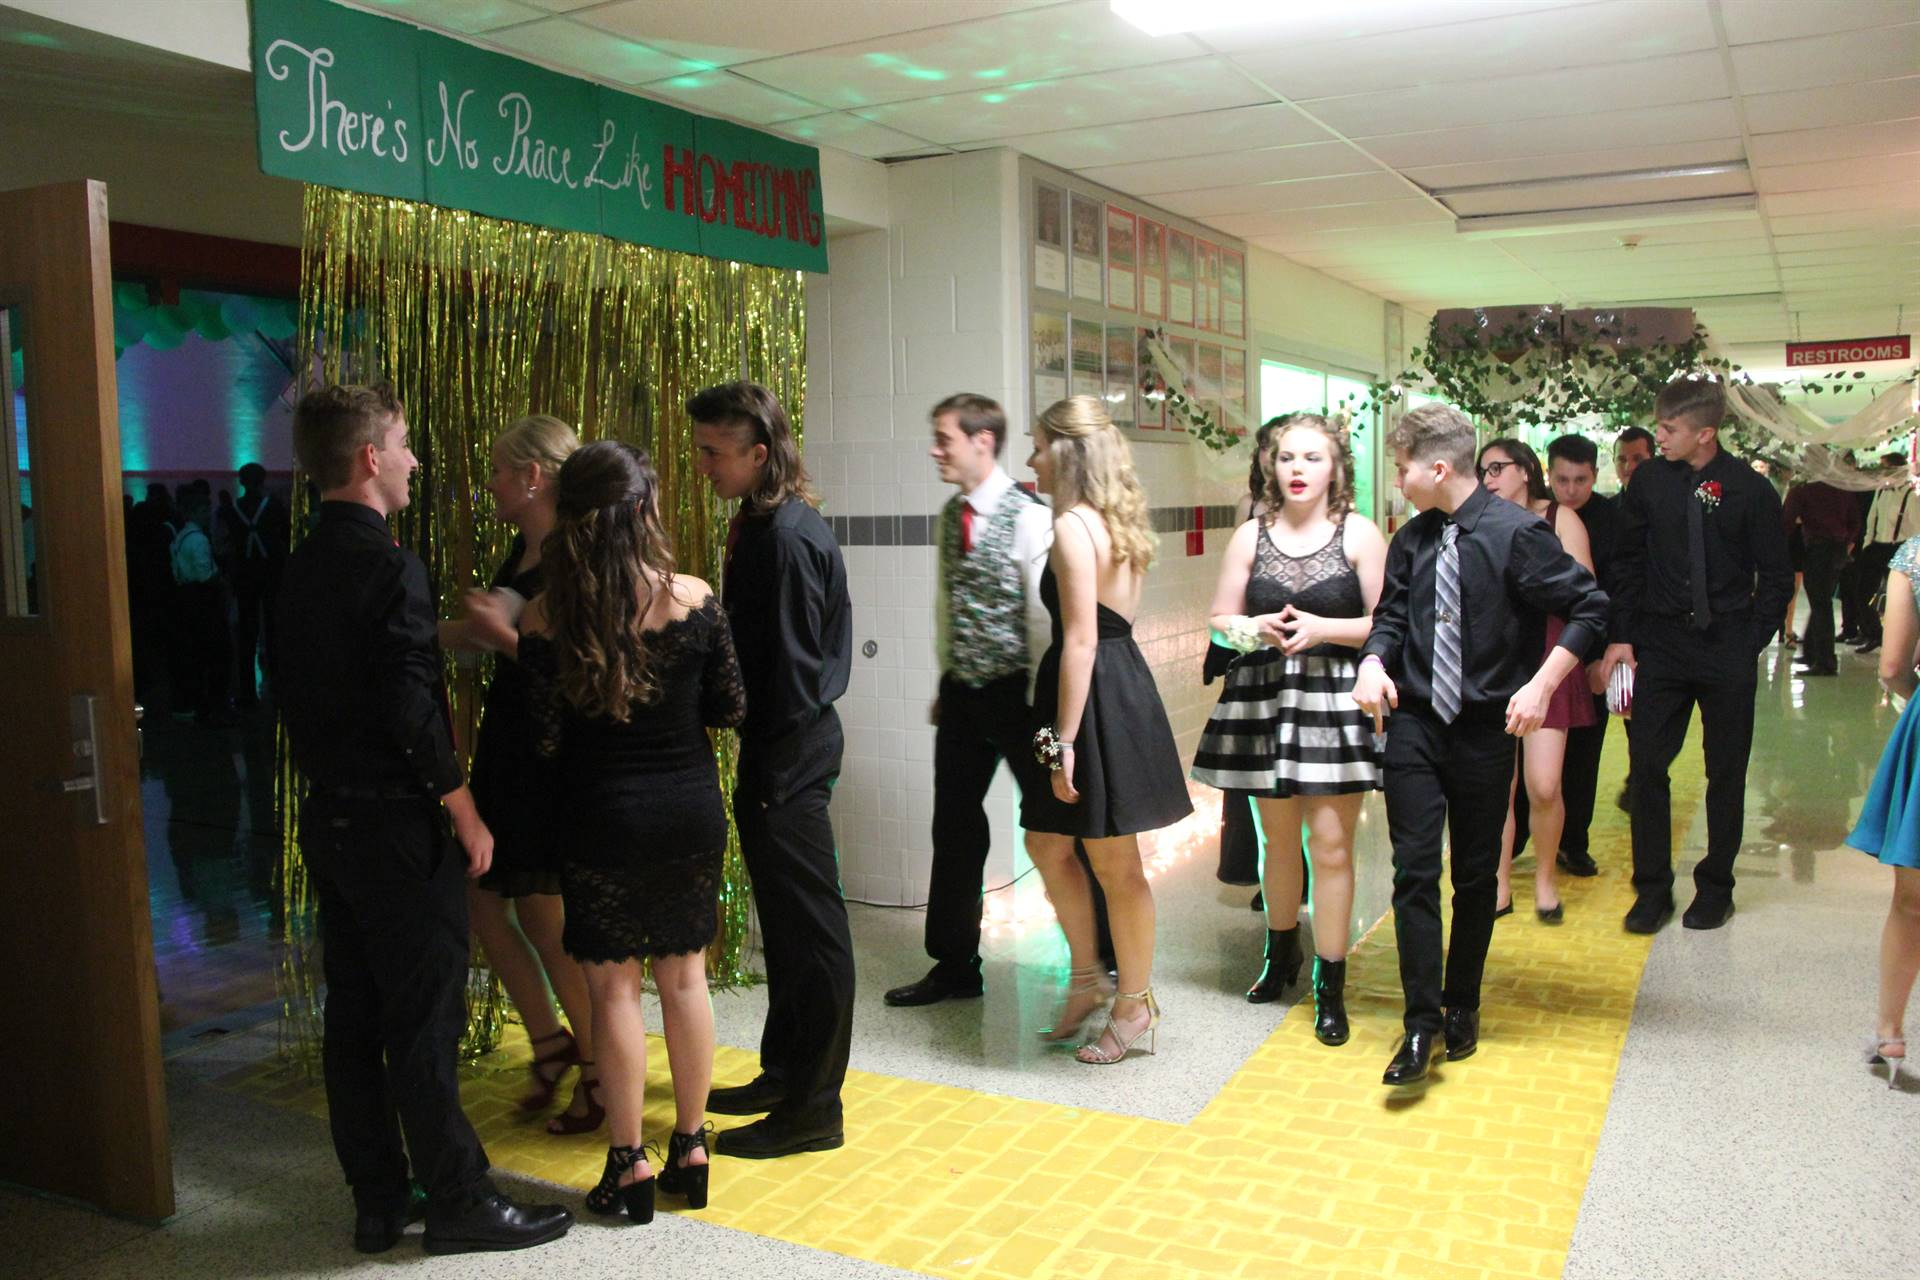 students in the high school hallway going into homecoming dance